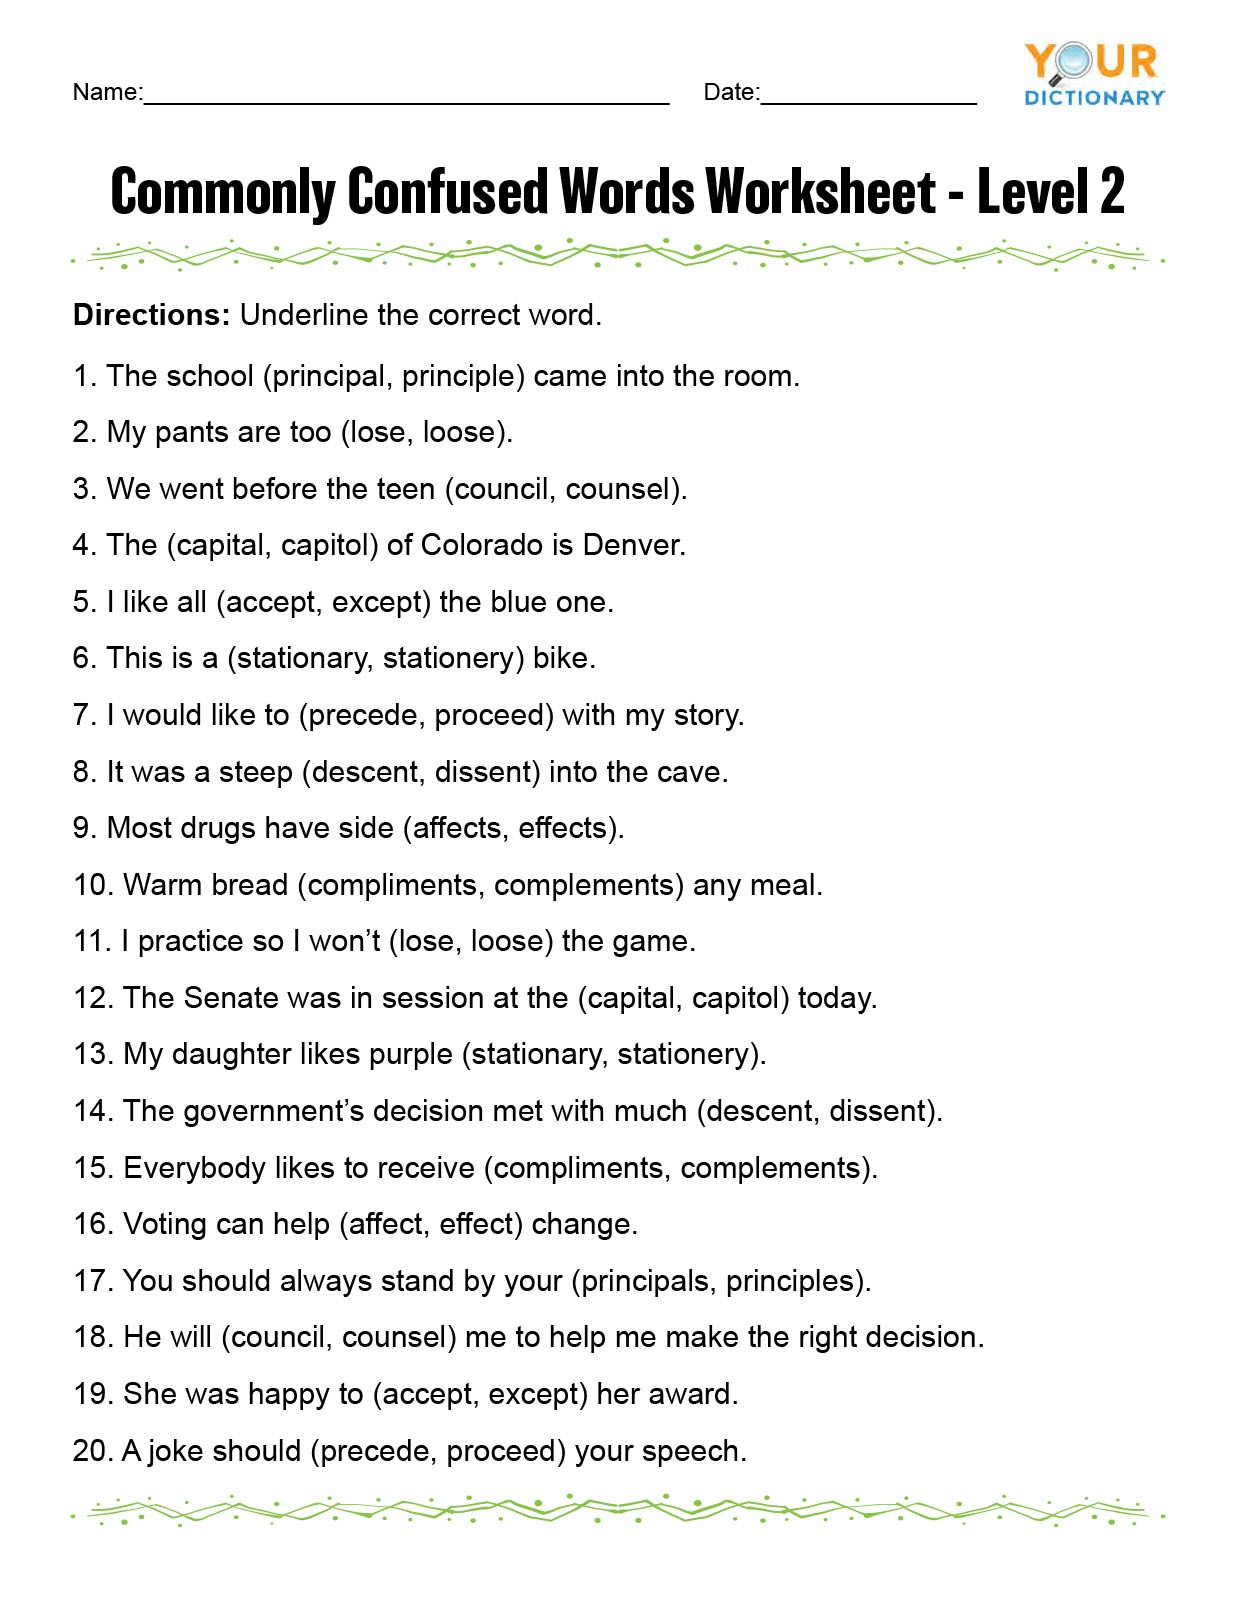 Dictionary Skill Worksheets 3rd Grade Monly Confused Words Worksheet